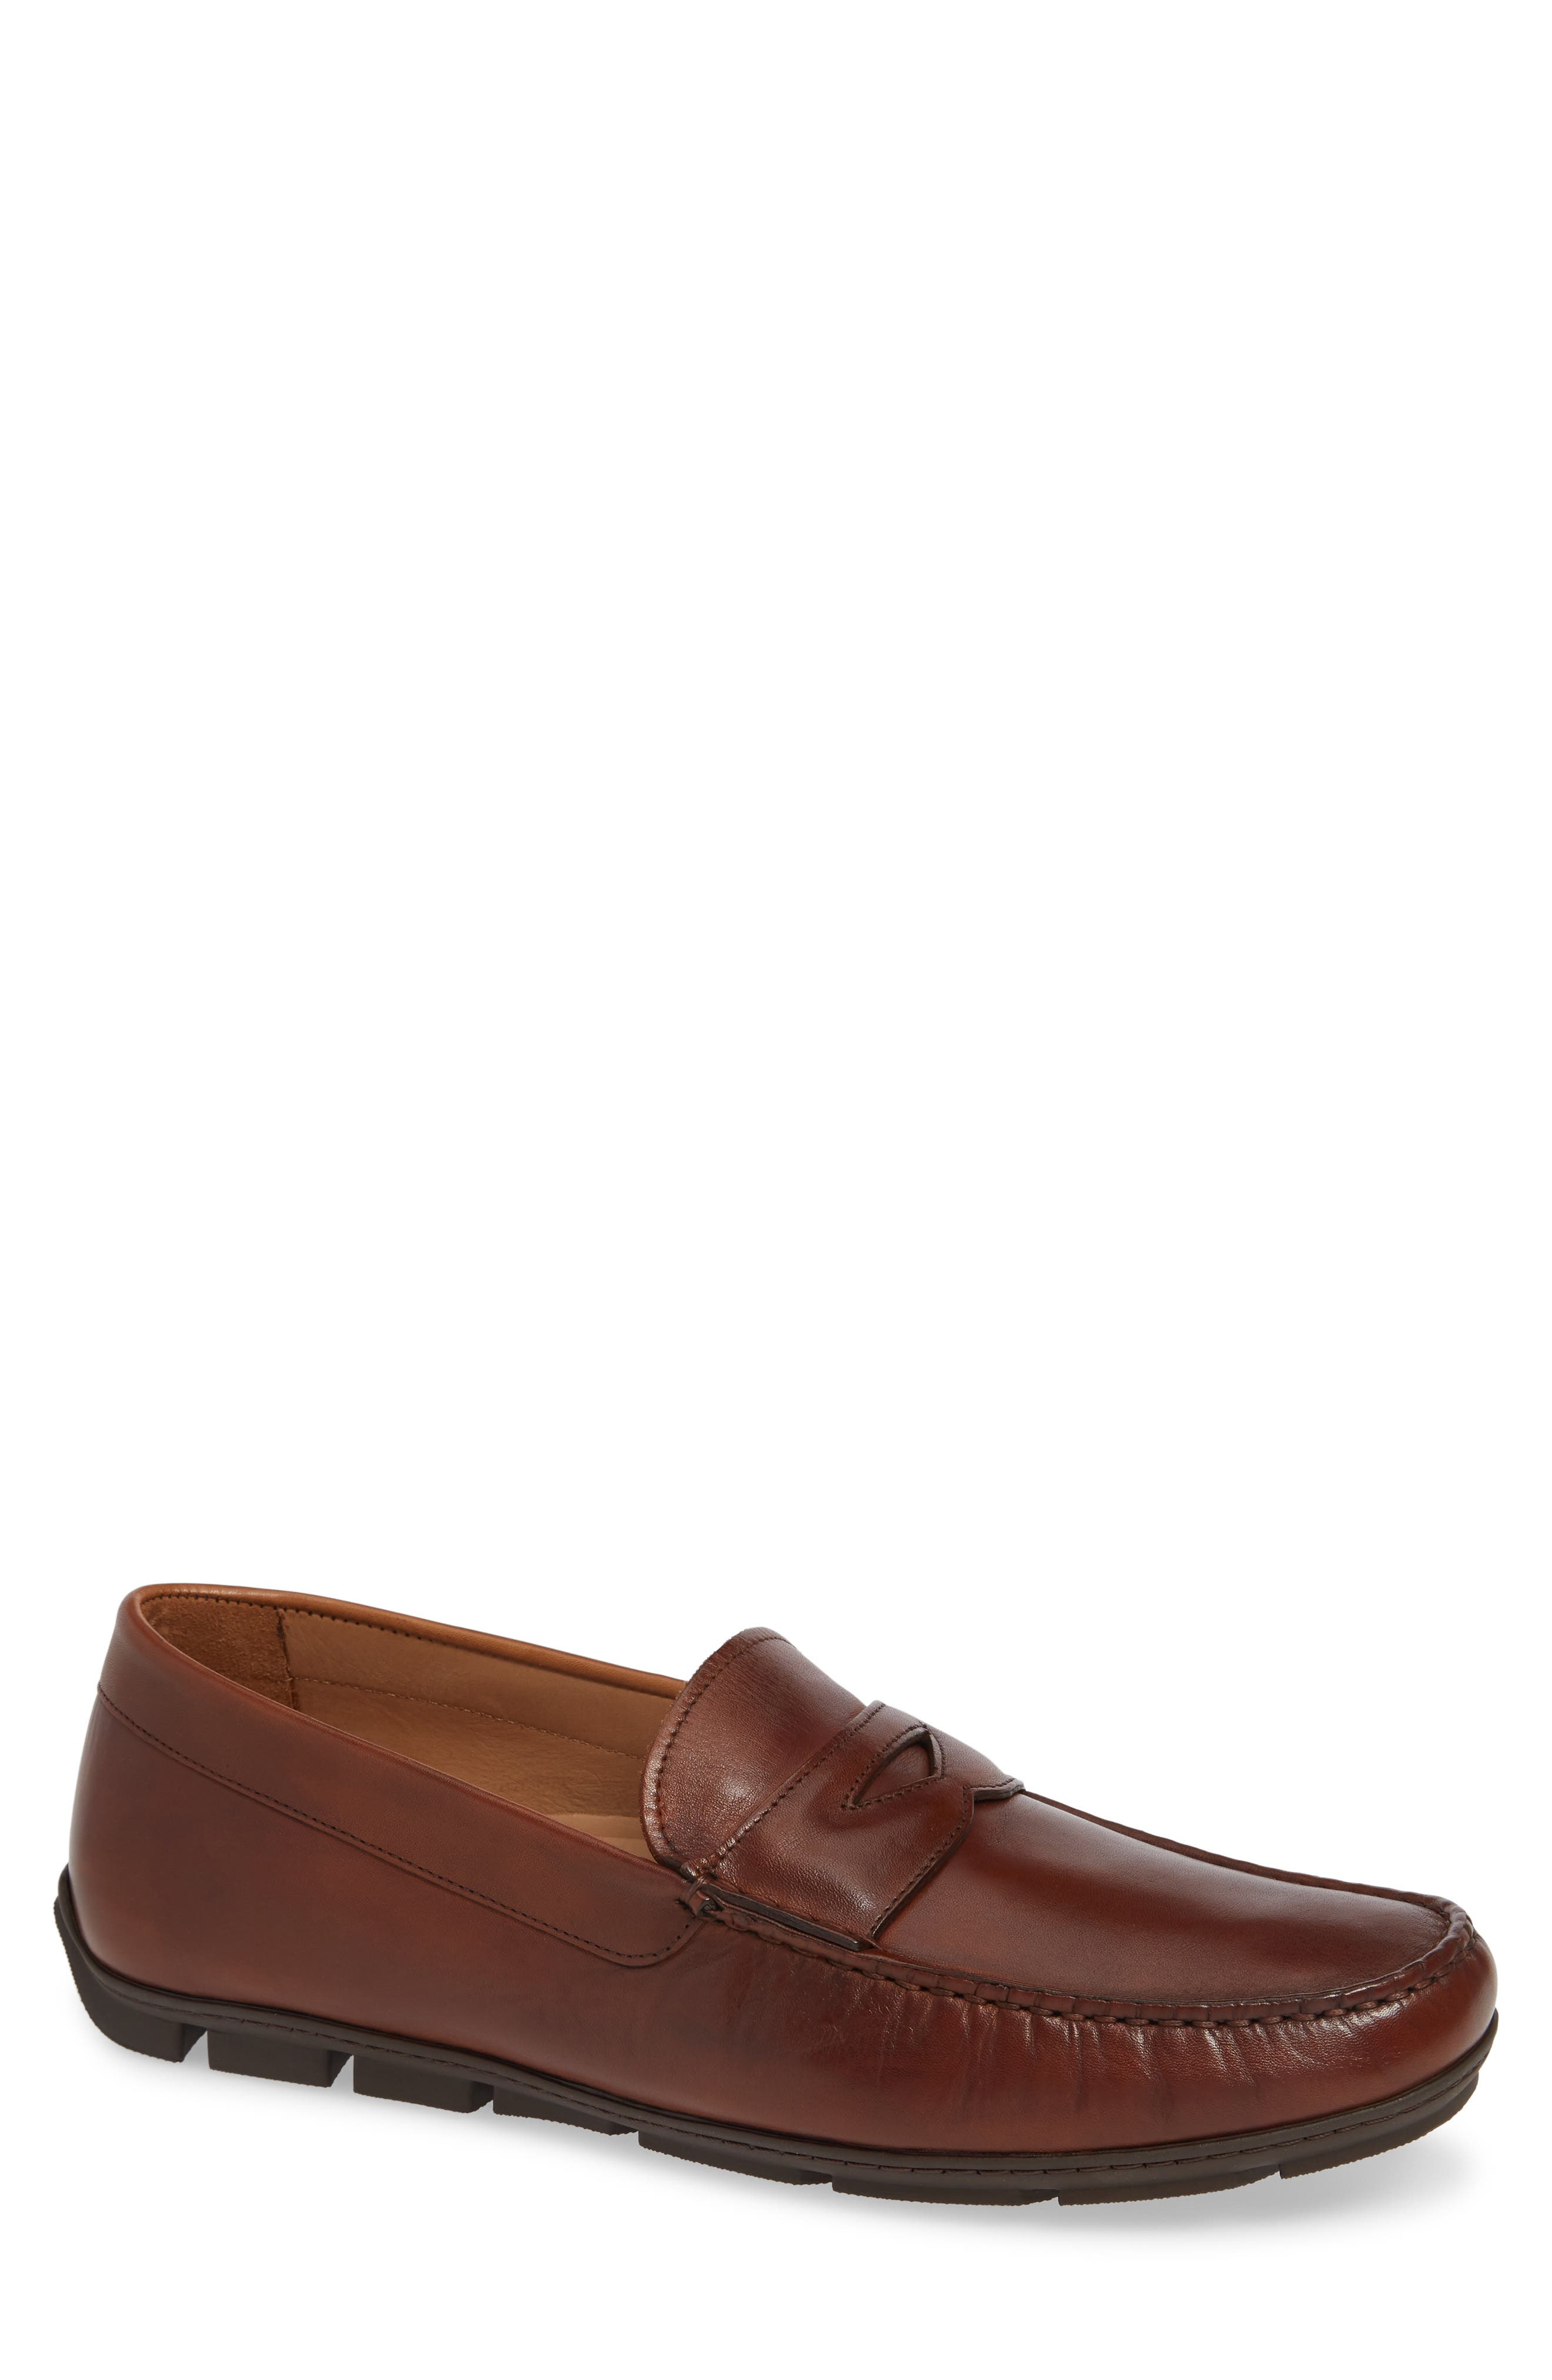 VINCE CAMUTO Ditto Driving Shoe, Main, color, COGNAC LEATHER